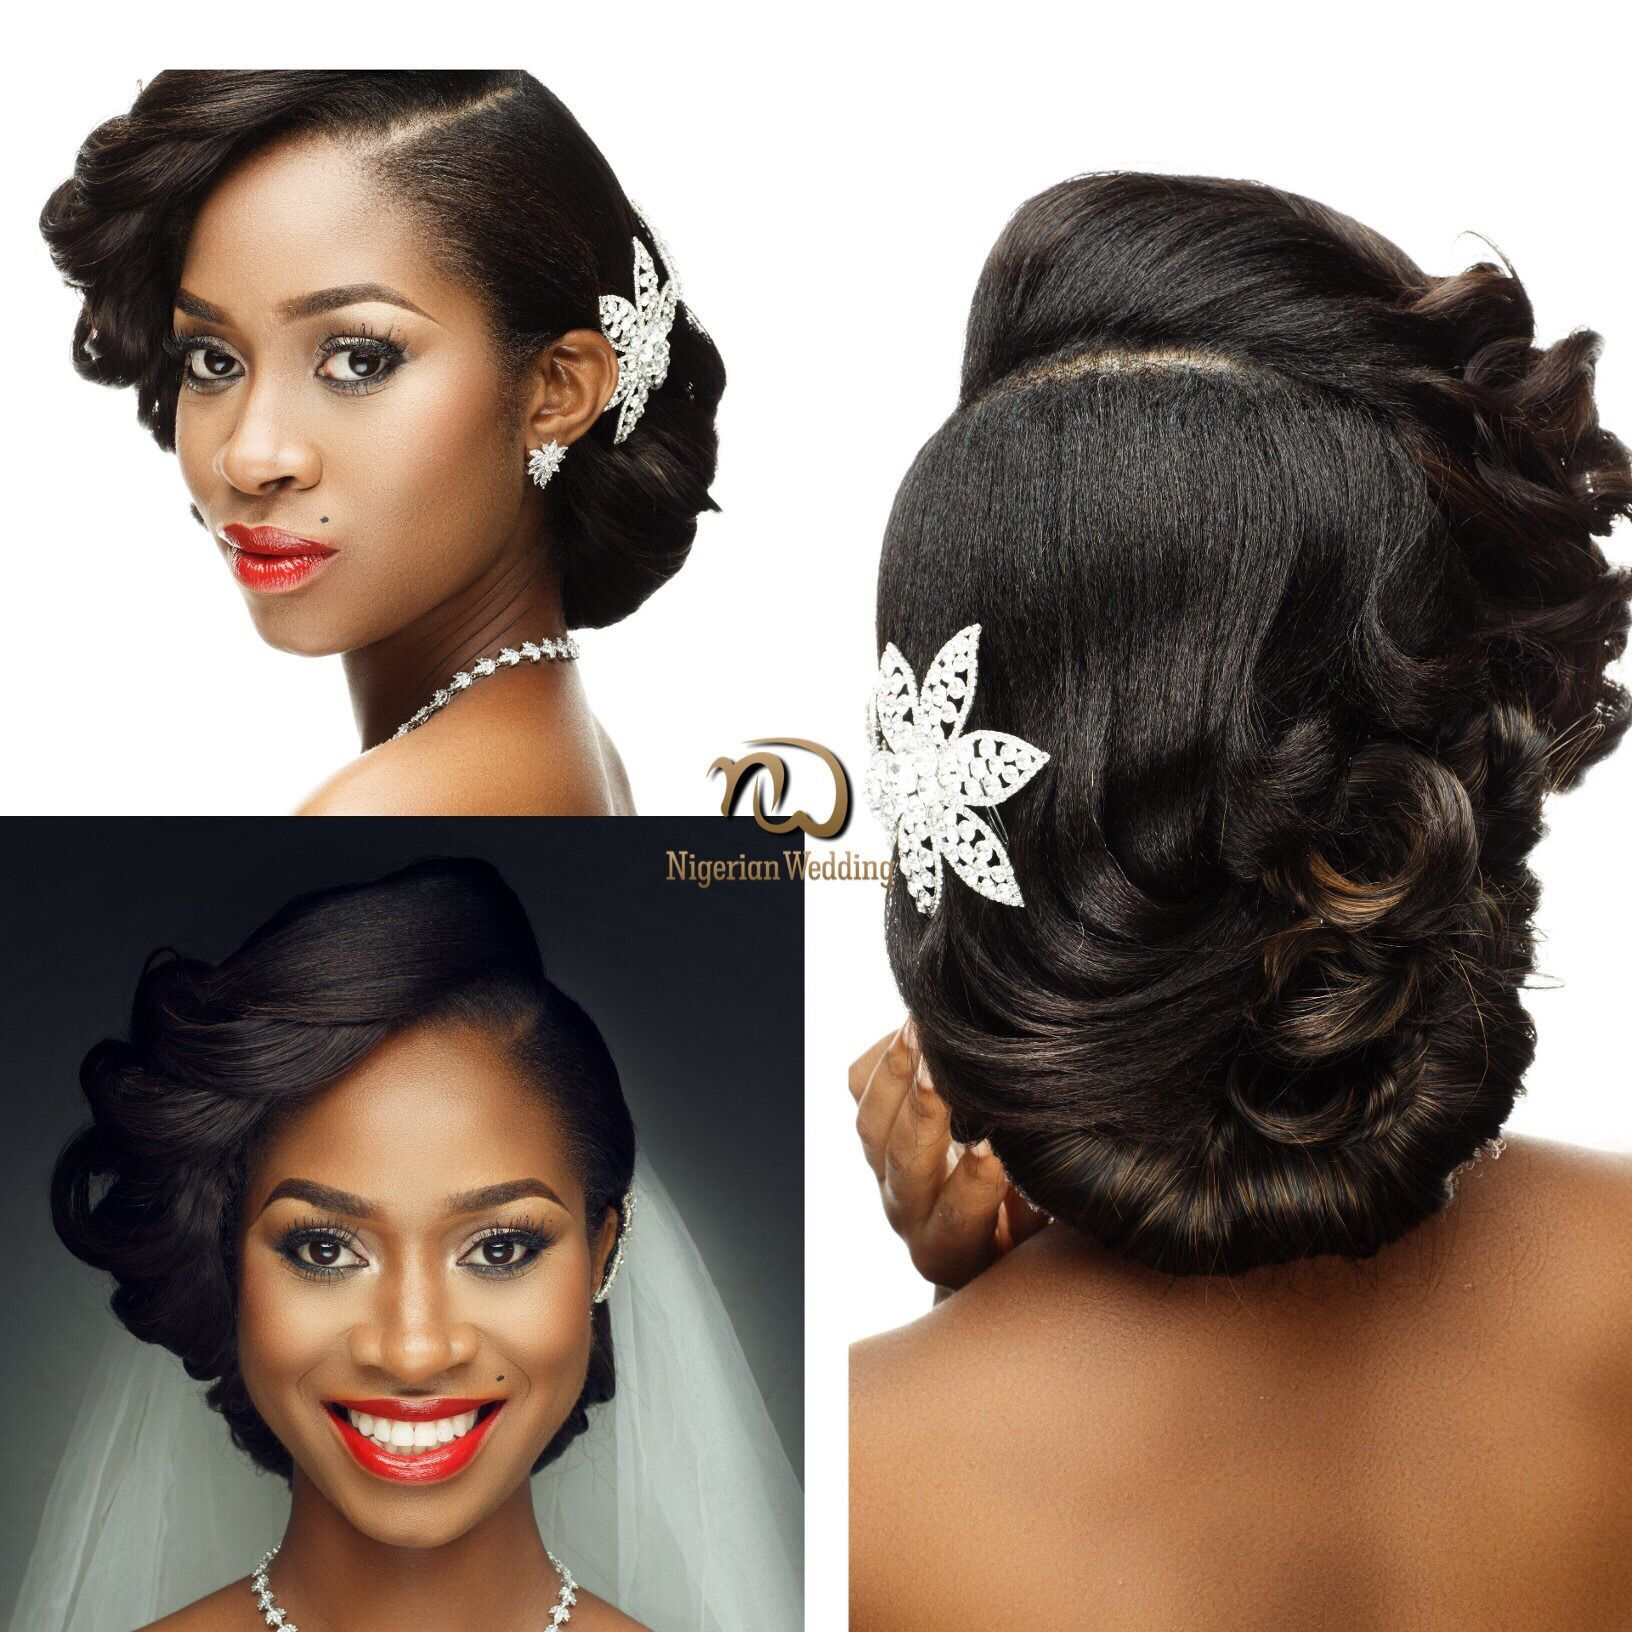 Account Suspended African Wedding Hairstyles Natural Wedding Hairstyles Bridal Hair Inspiration